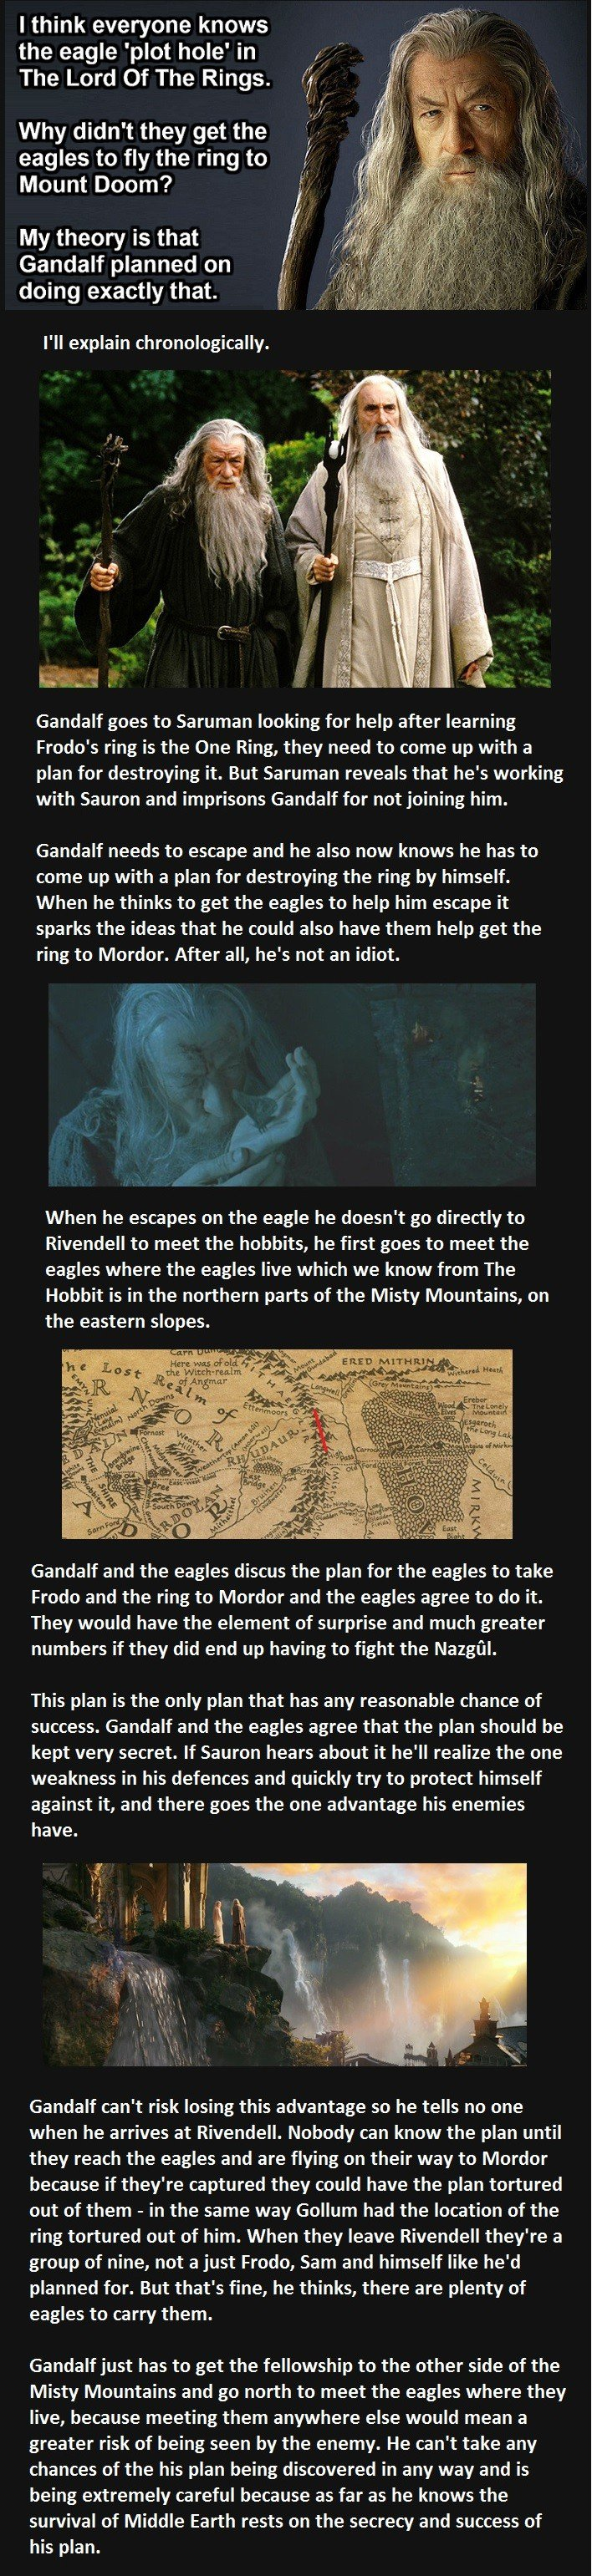 this guy just changed the way we see lord of the rings, the eagle plot hole